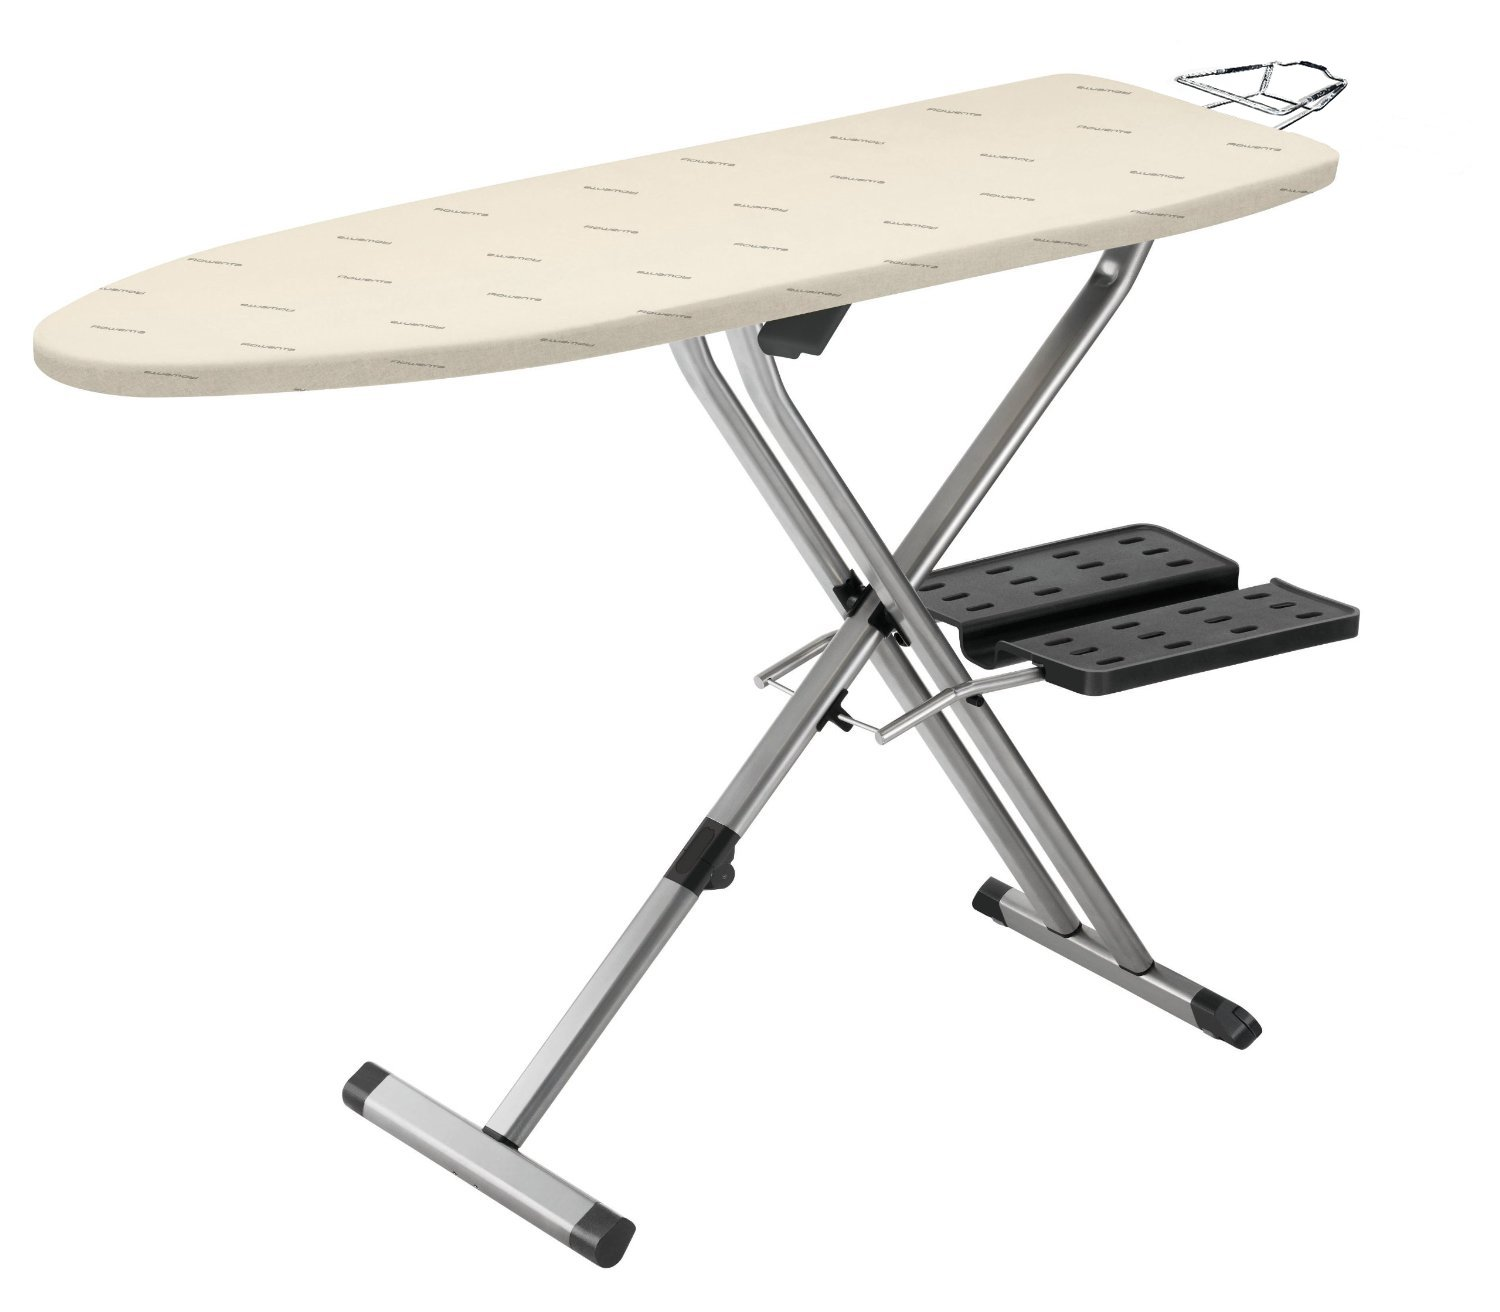 Rowenta IB9100 Pro Compact Professional Folding Ironing Board with Hanger Racks, 18-Inch by 54-Inch, Beige Groupe SEB 1110030481